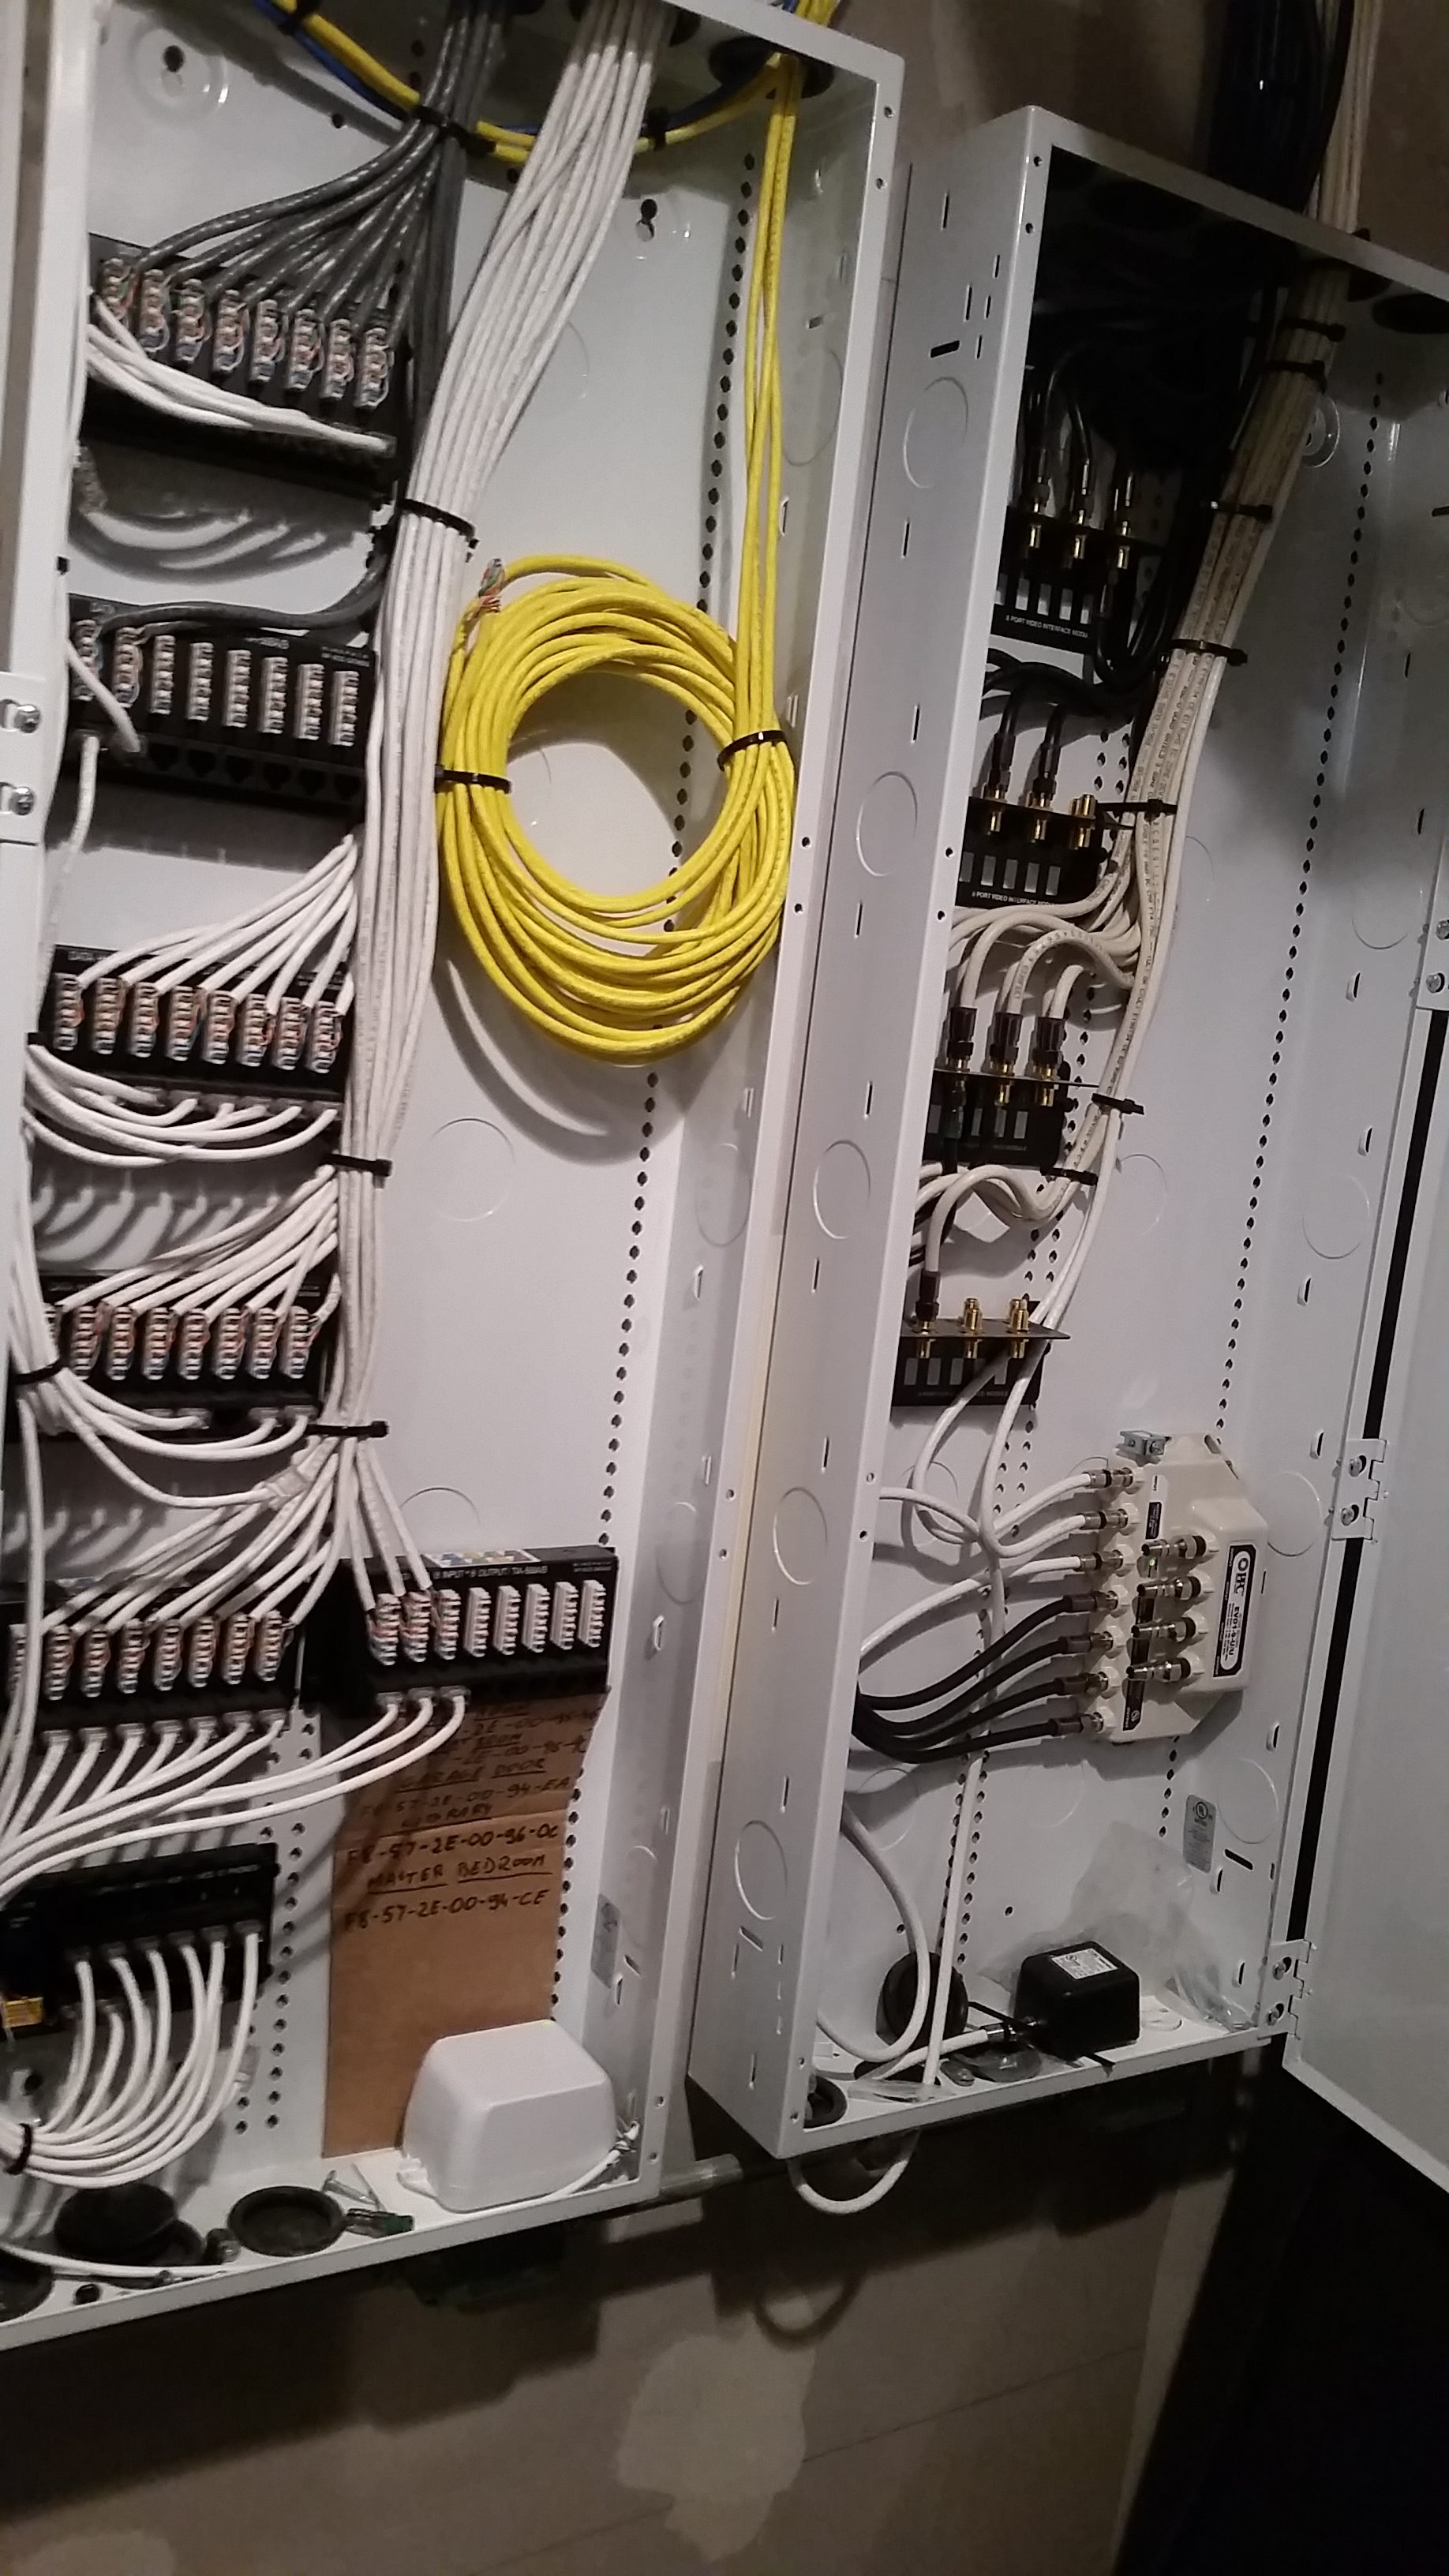 Low Voltage Wiring   How to Wire a Structured Cabling Enclosure This is the fourth post in a series on how to prewire low voltage wiring  and structured cabling in your home  We ll be focusing on how to install a